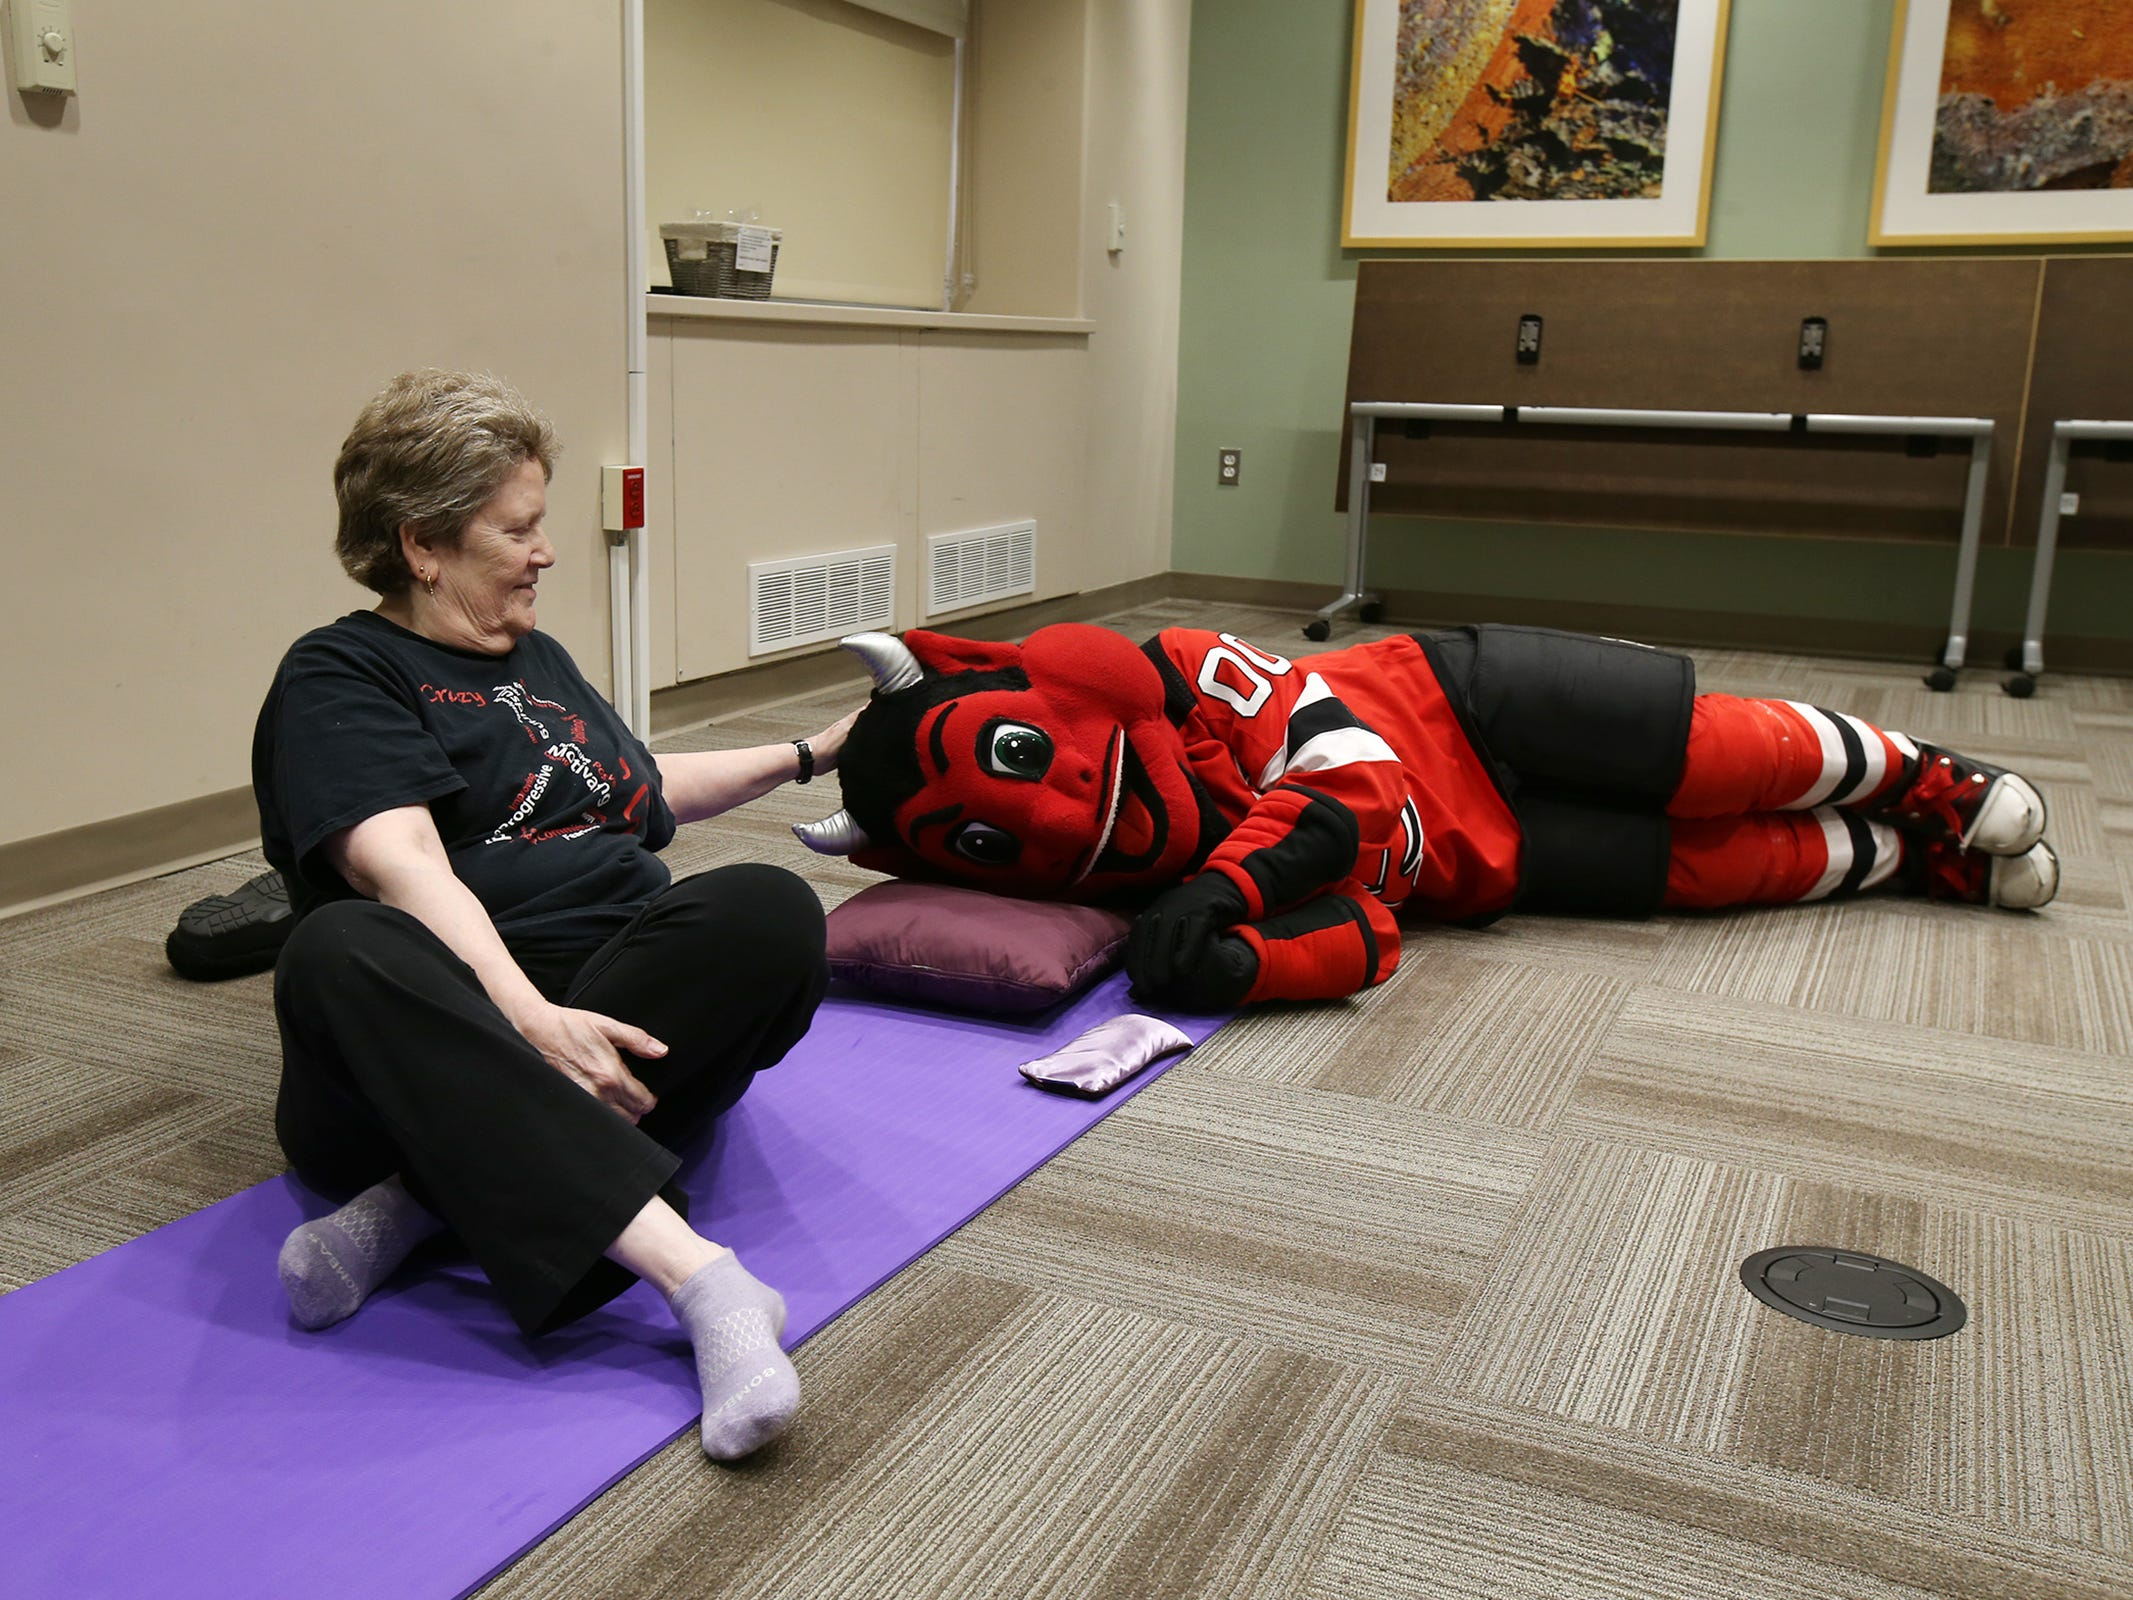 The New Jersey Devils' mascot visits Rachel Halfant of Toms River during her meditation class during a visit to the Monmouth Medical Center Southern Campus in Lakewood, NJ Monday, December 17, 2018. During his visit, he also loaded donated toys into a police car with members of the Lakewood PBA and Lakewood Police Department.